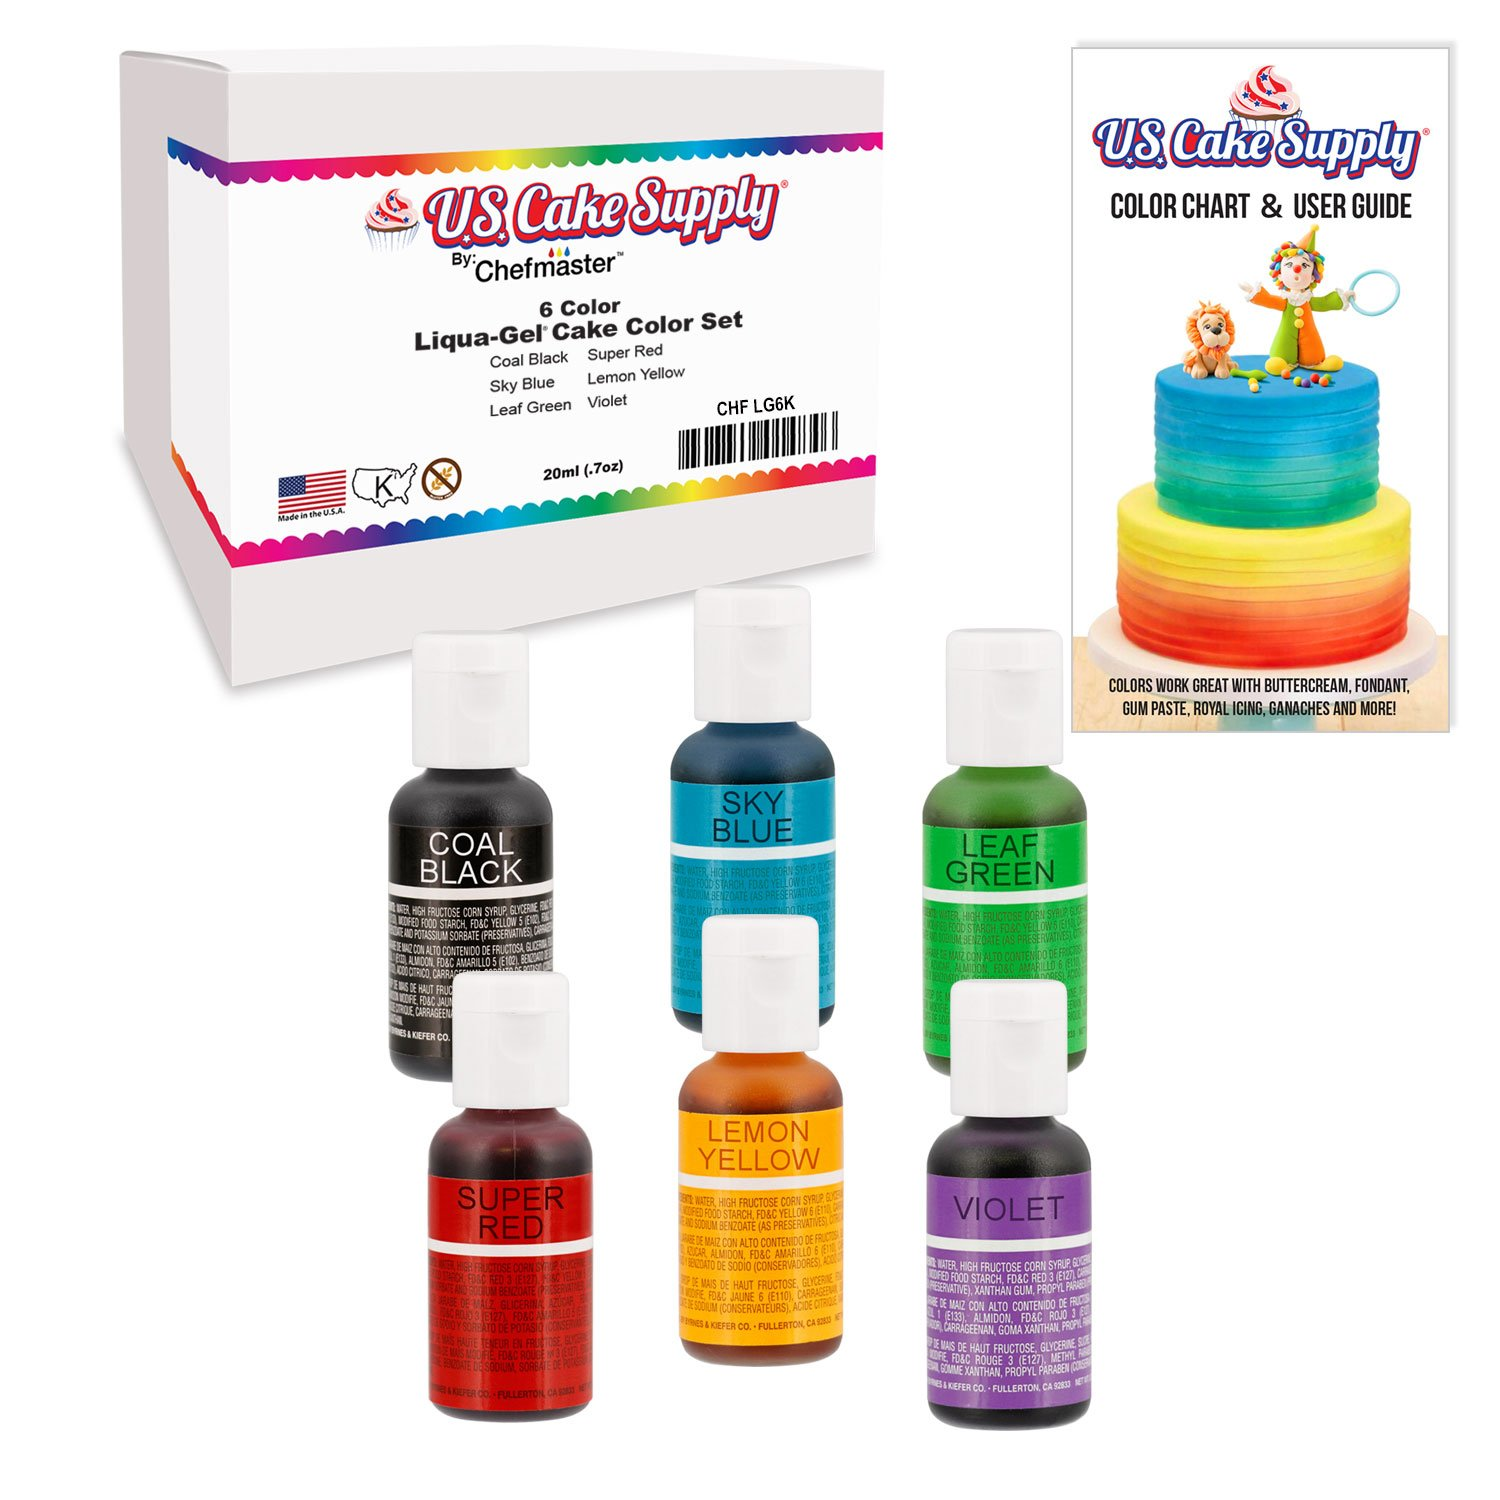 6 Food Color US Cake Supply by Chefmaster Liqua-Gel Paste Cake Food Coloring Set - The 6 Most Popular Colors in 0.75 fl. oz. (20ml) Bottles